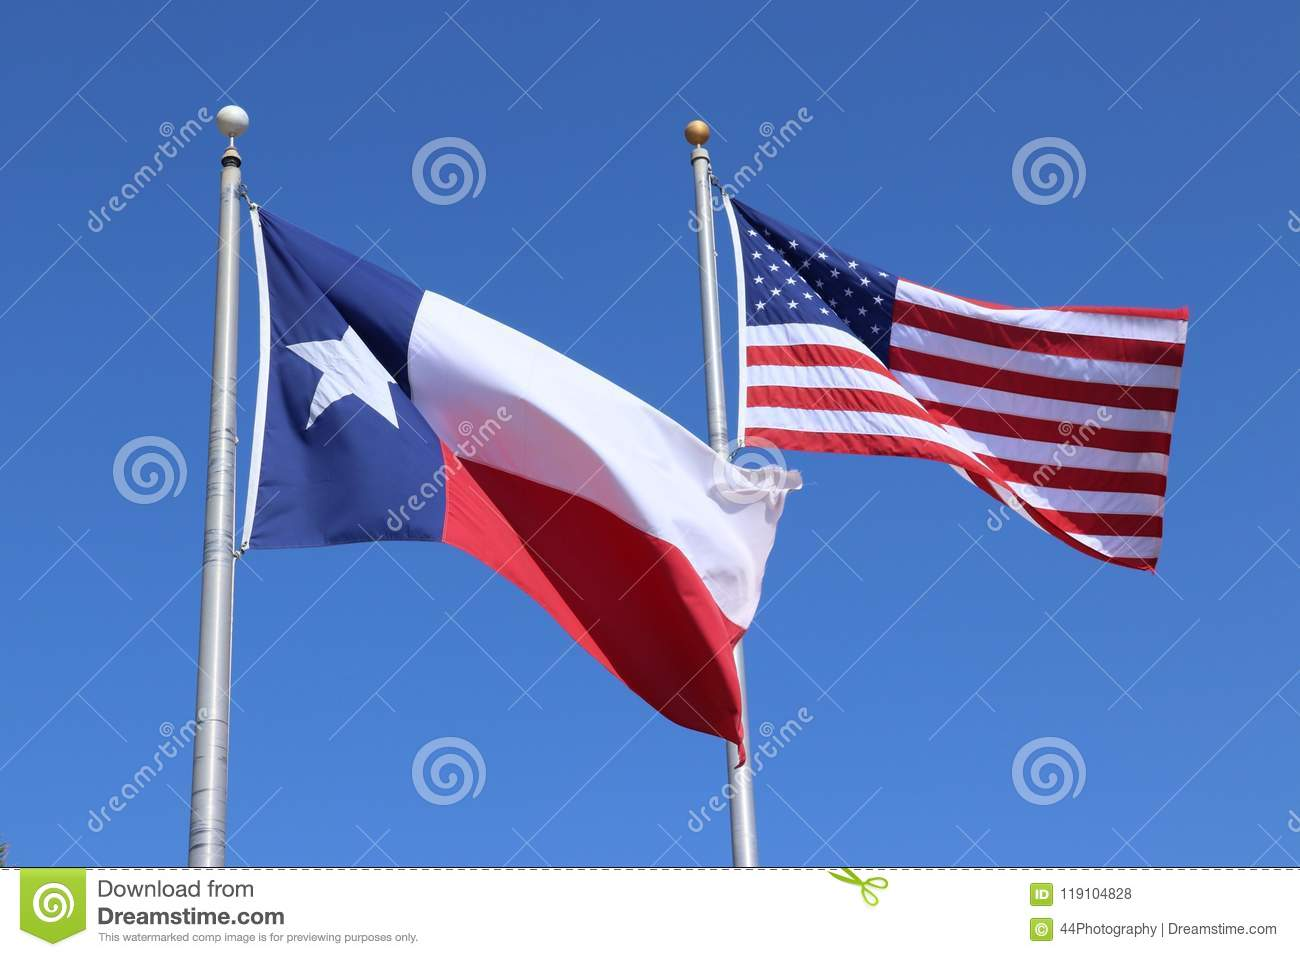 Texas flag, Lone Star State flag and United States of America US flag against clear blue sky background